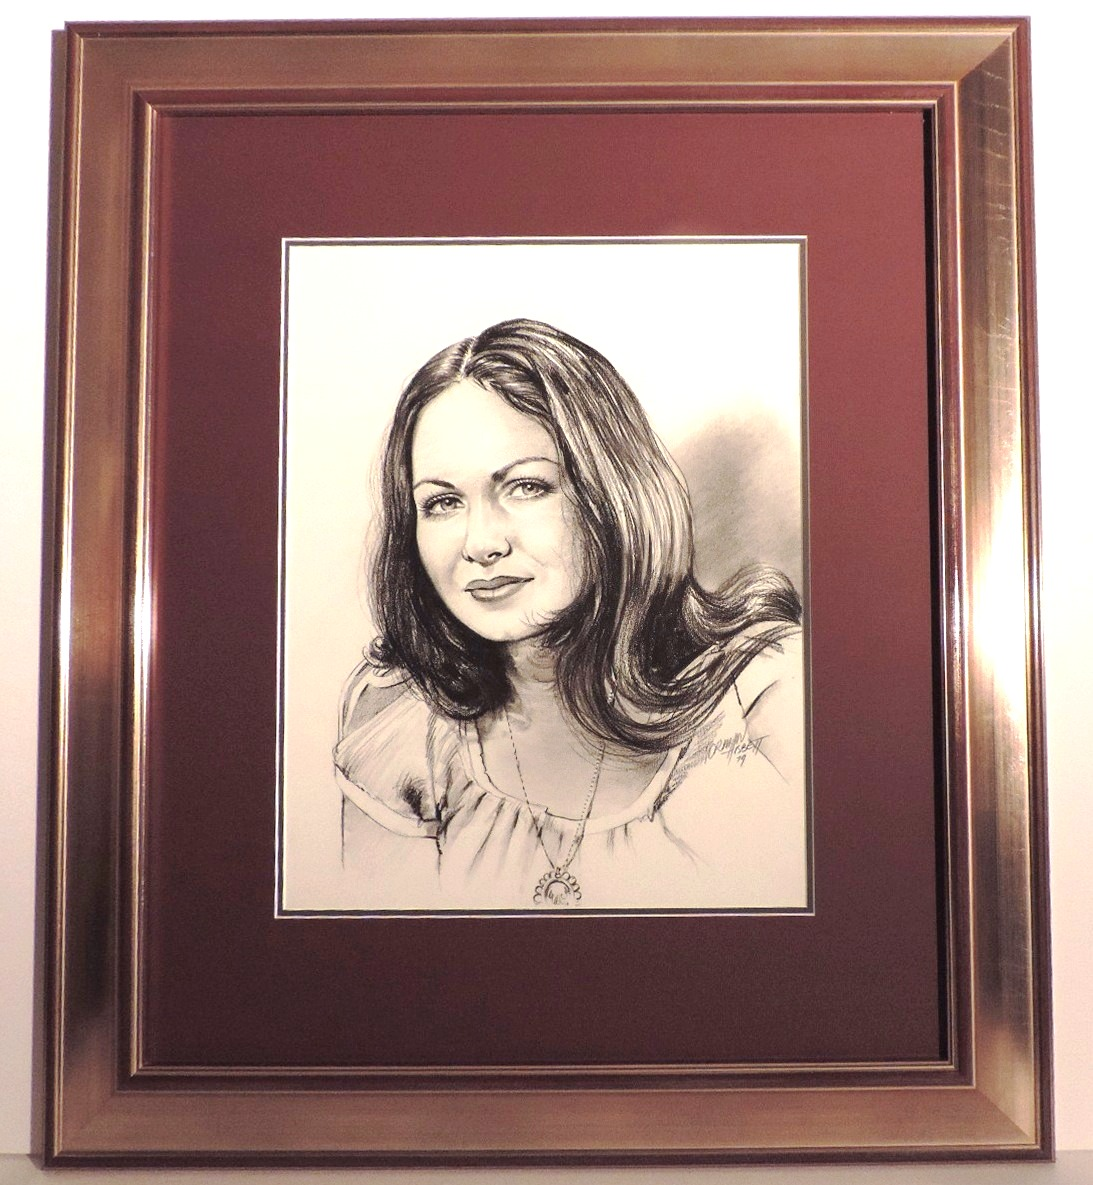 Framed_Charcoal_Portrait_edited